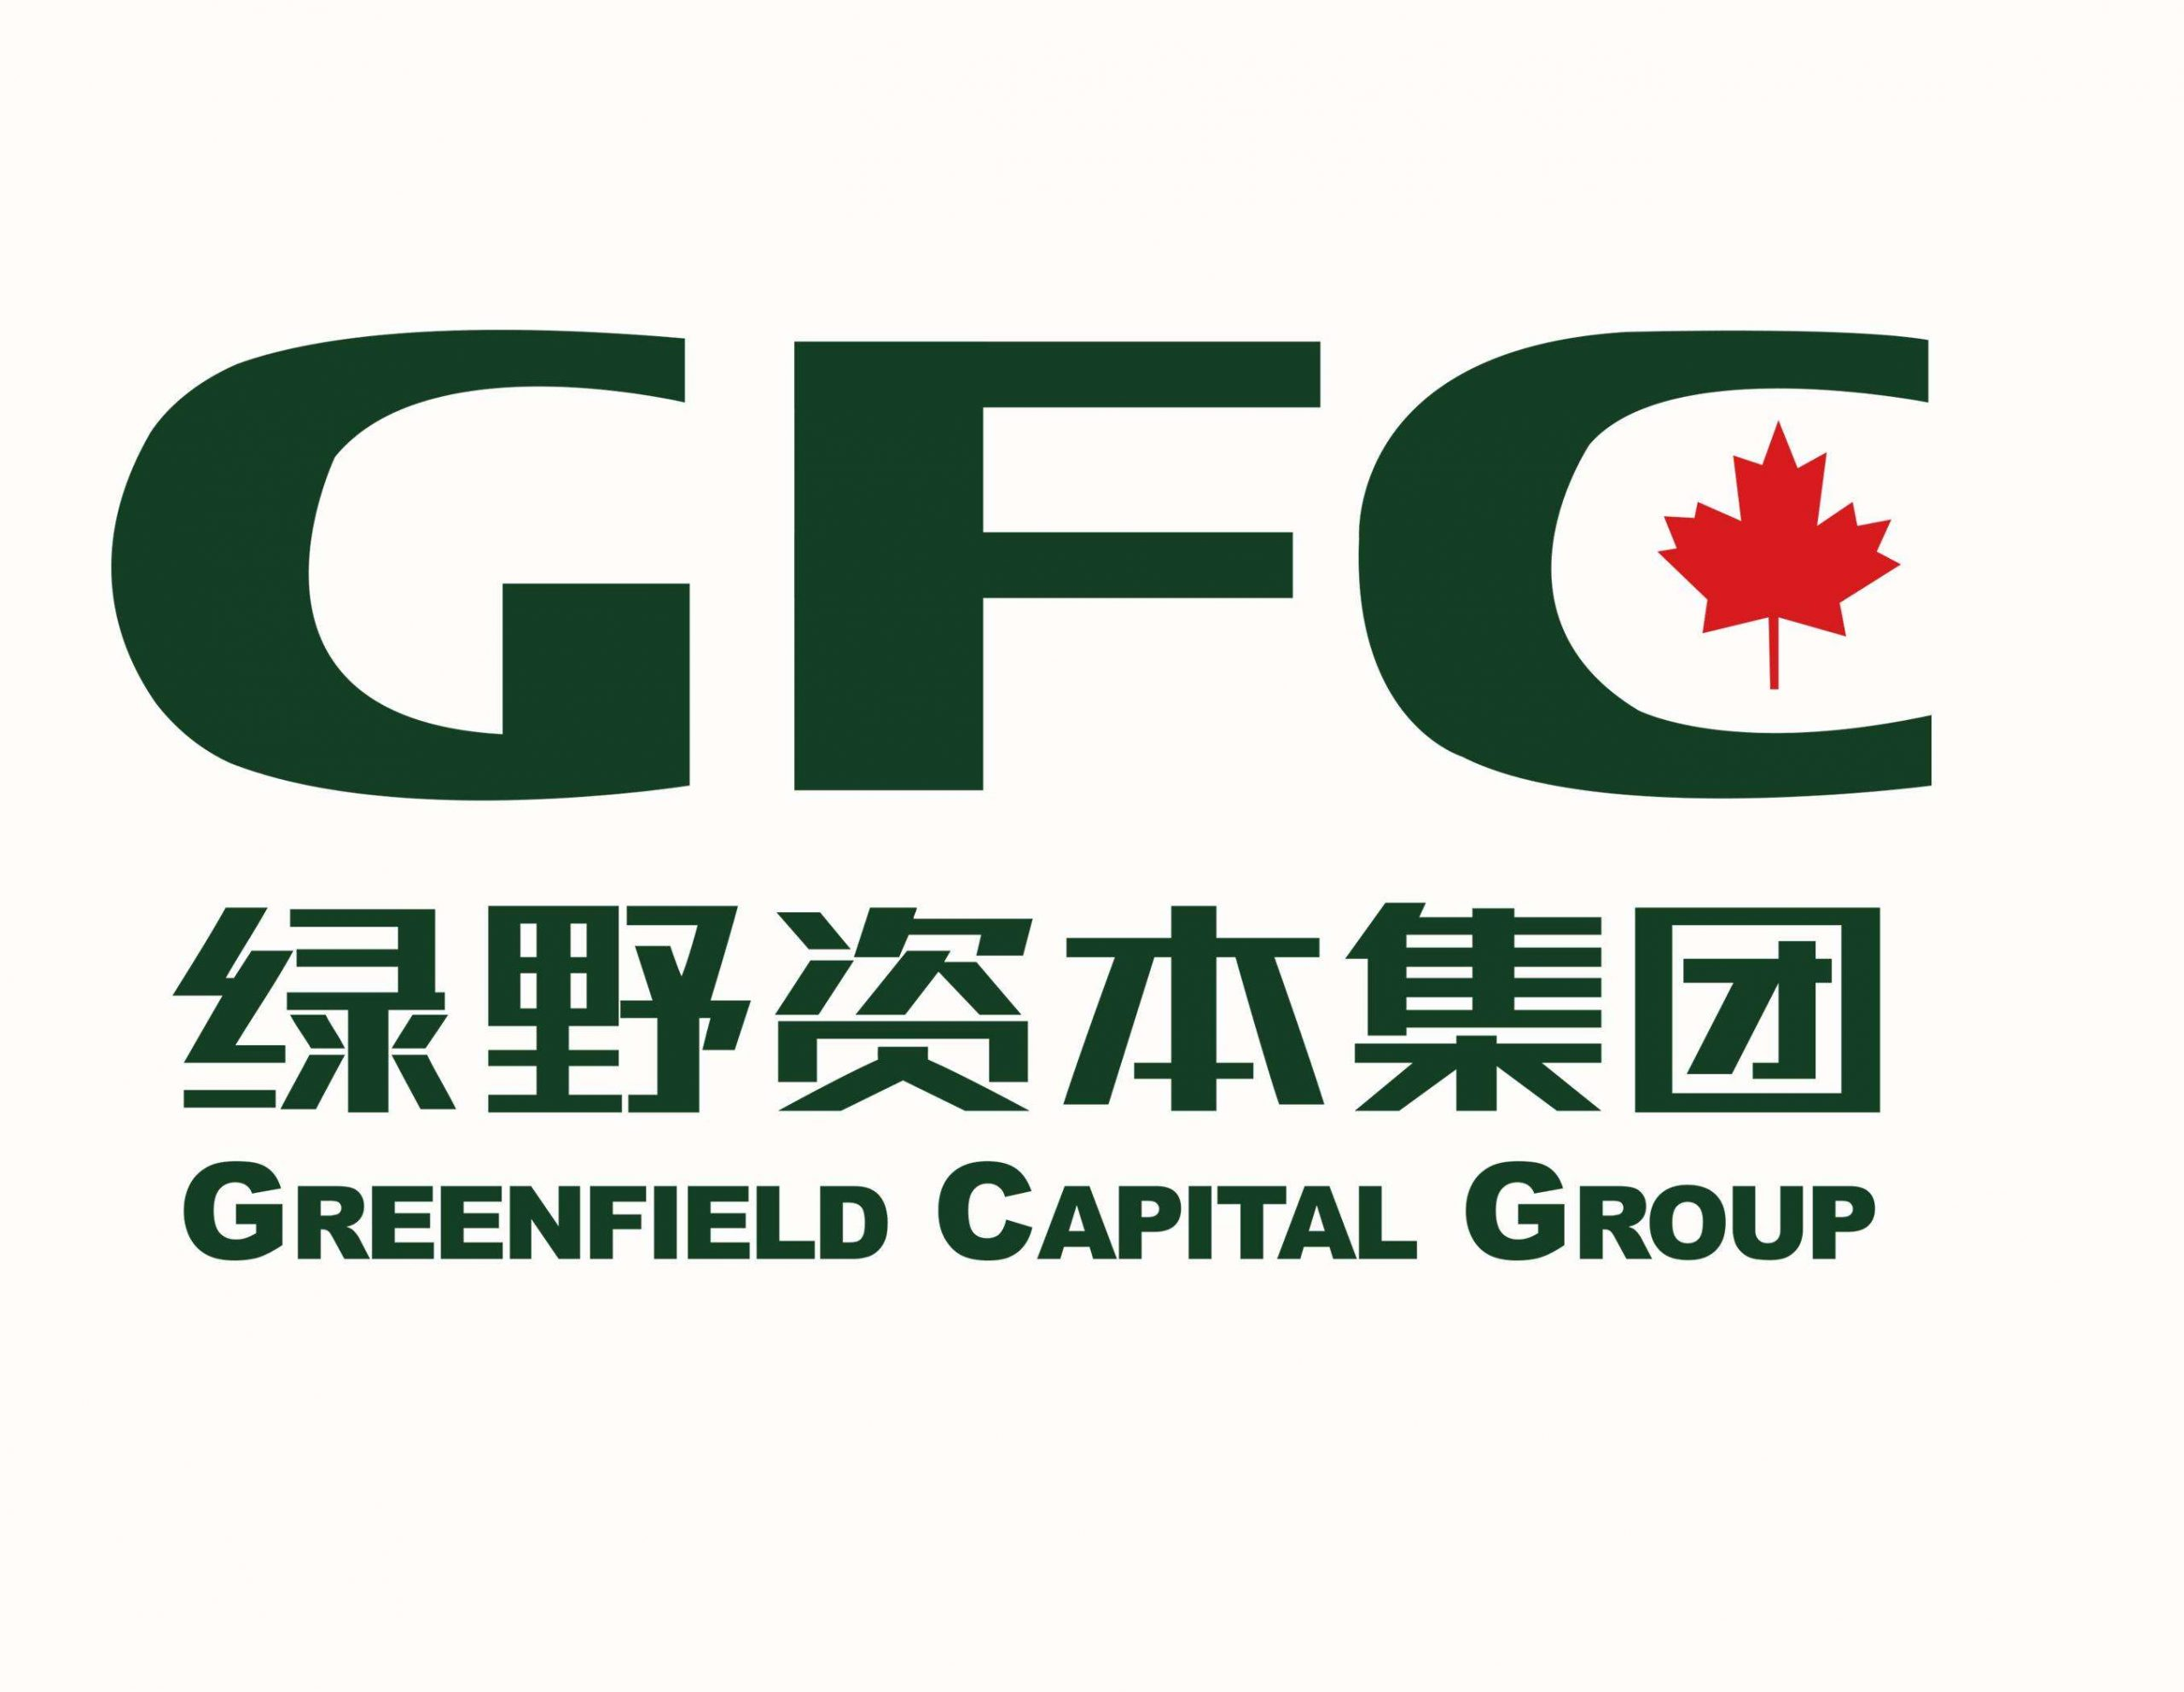 Greenfield Capital Group